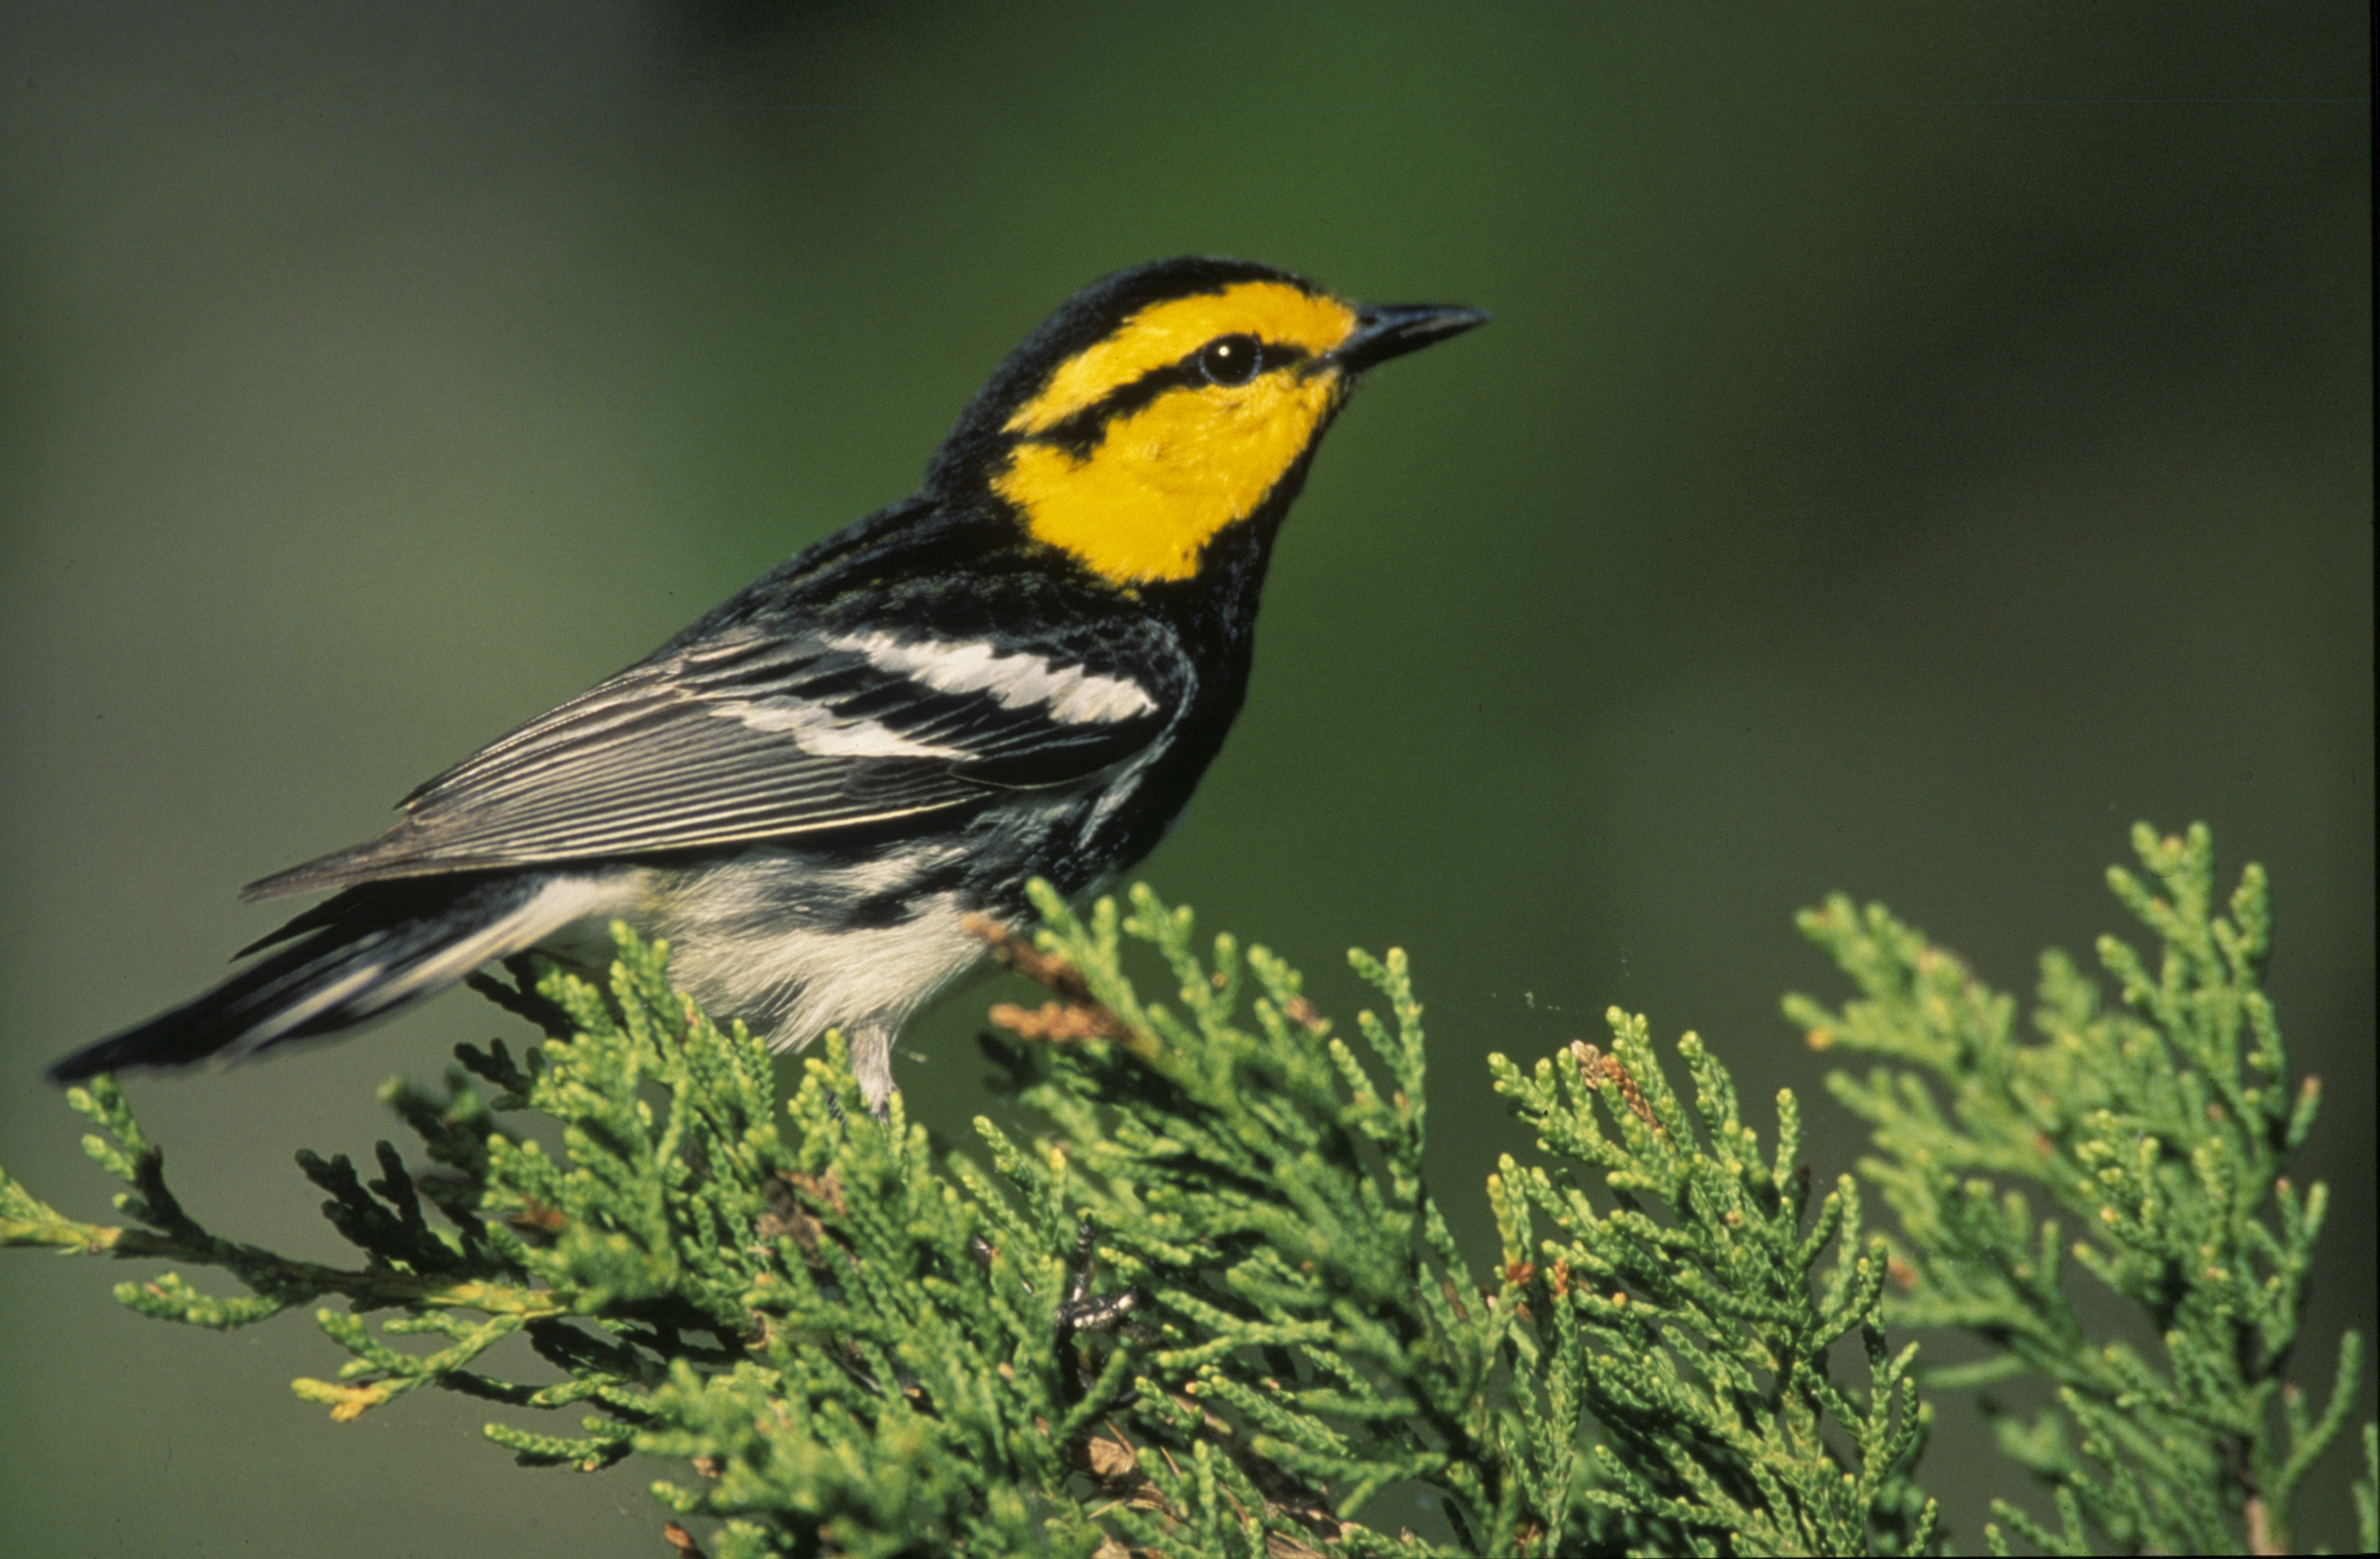 Warbler on the tree photo